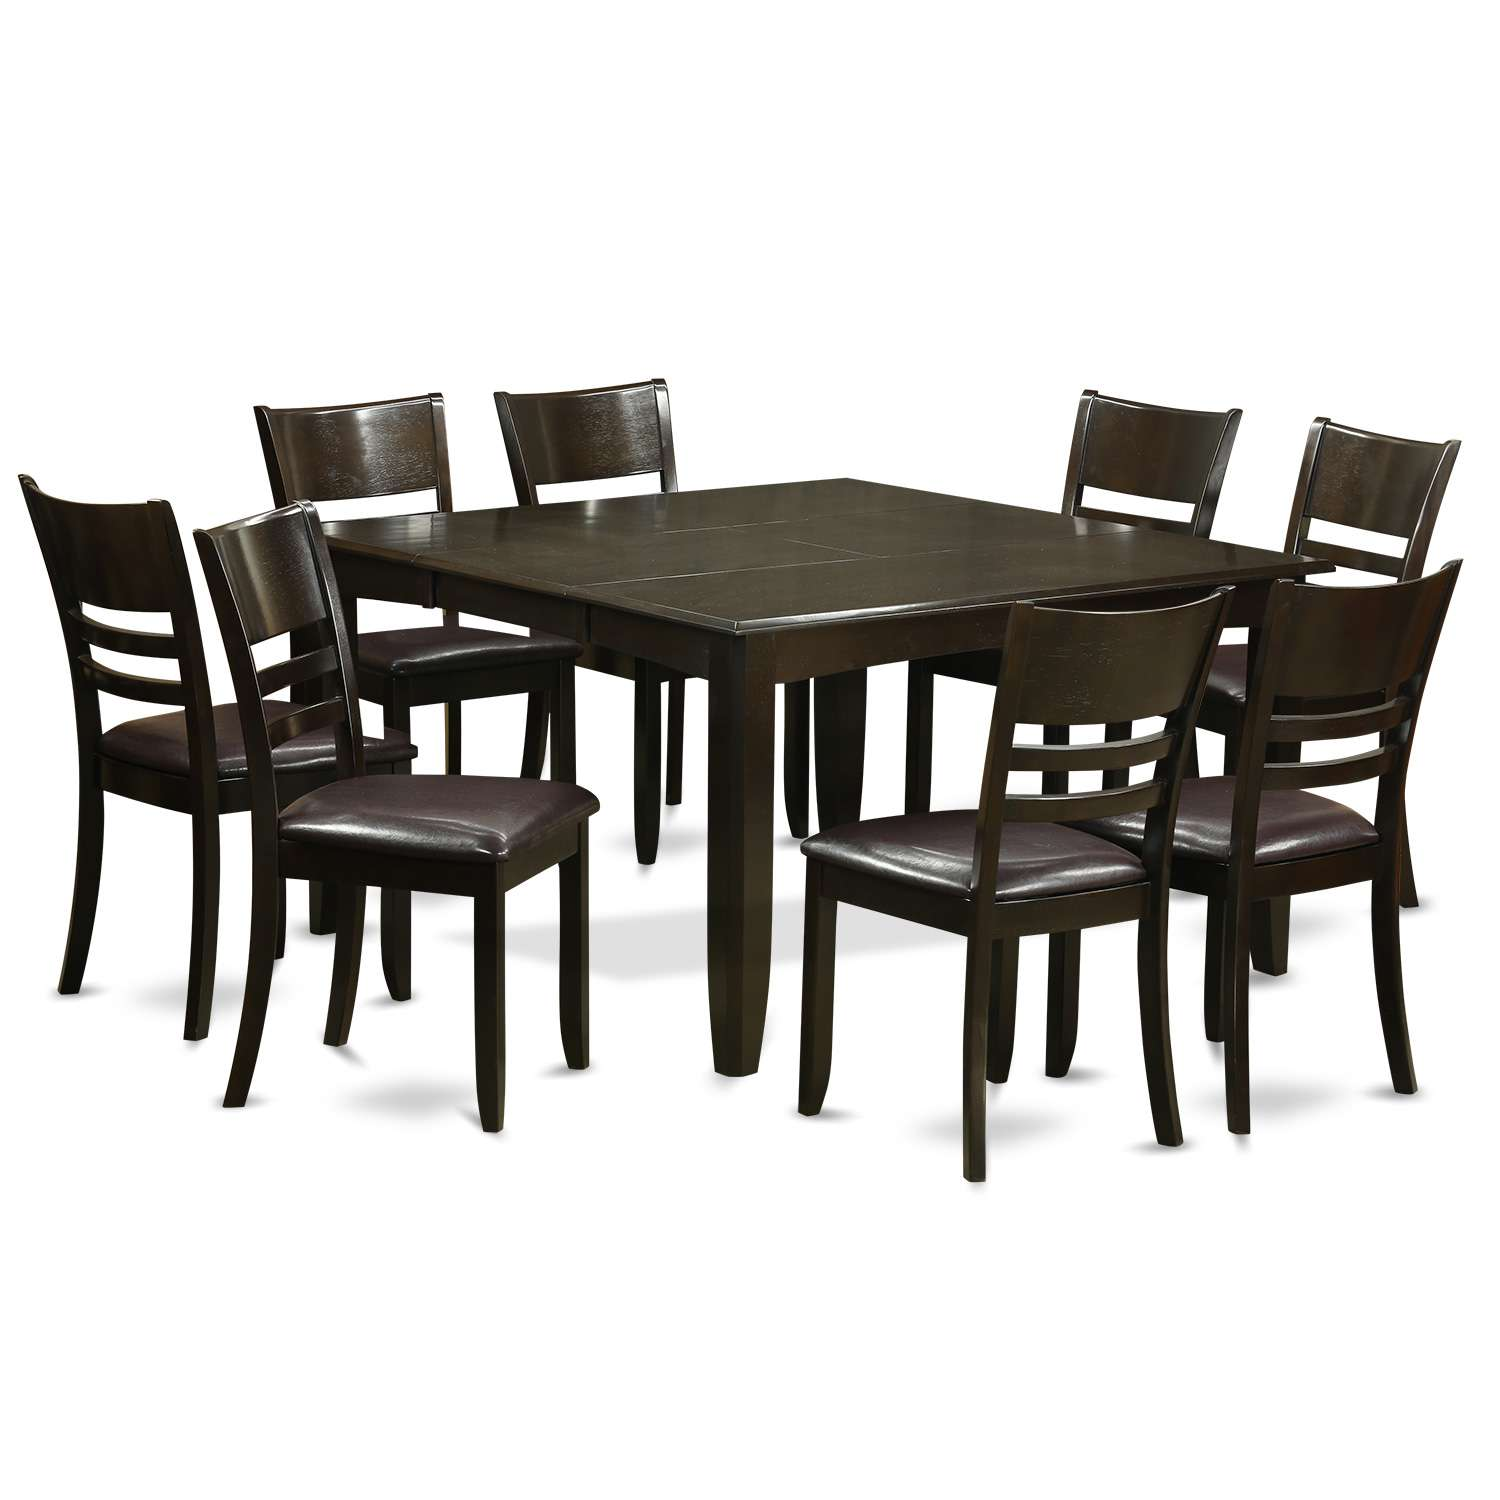 East West Furniture Parfait 9 Piece Dining Table Set Square Table